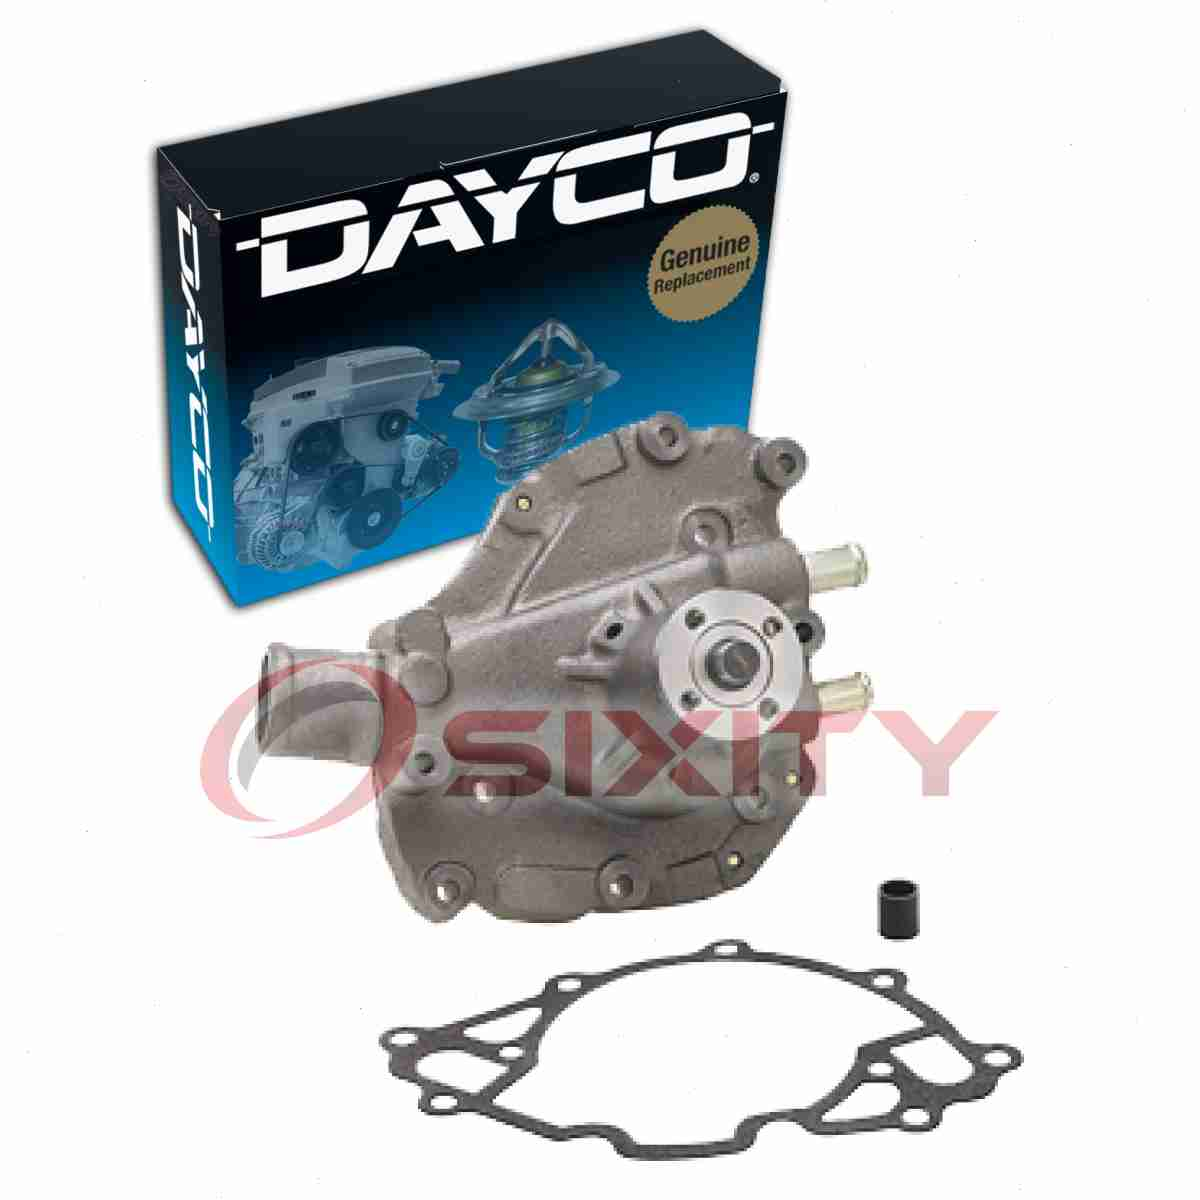 Dayco Water Pump for Ford Maverick 1971-1977 5.0L V8 Engine Tune Up qh